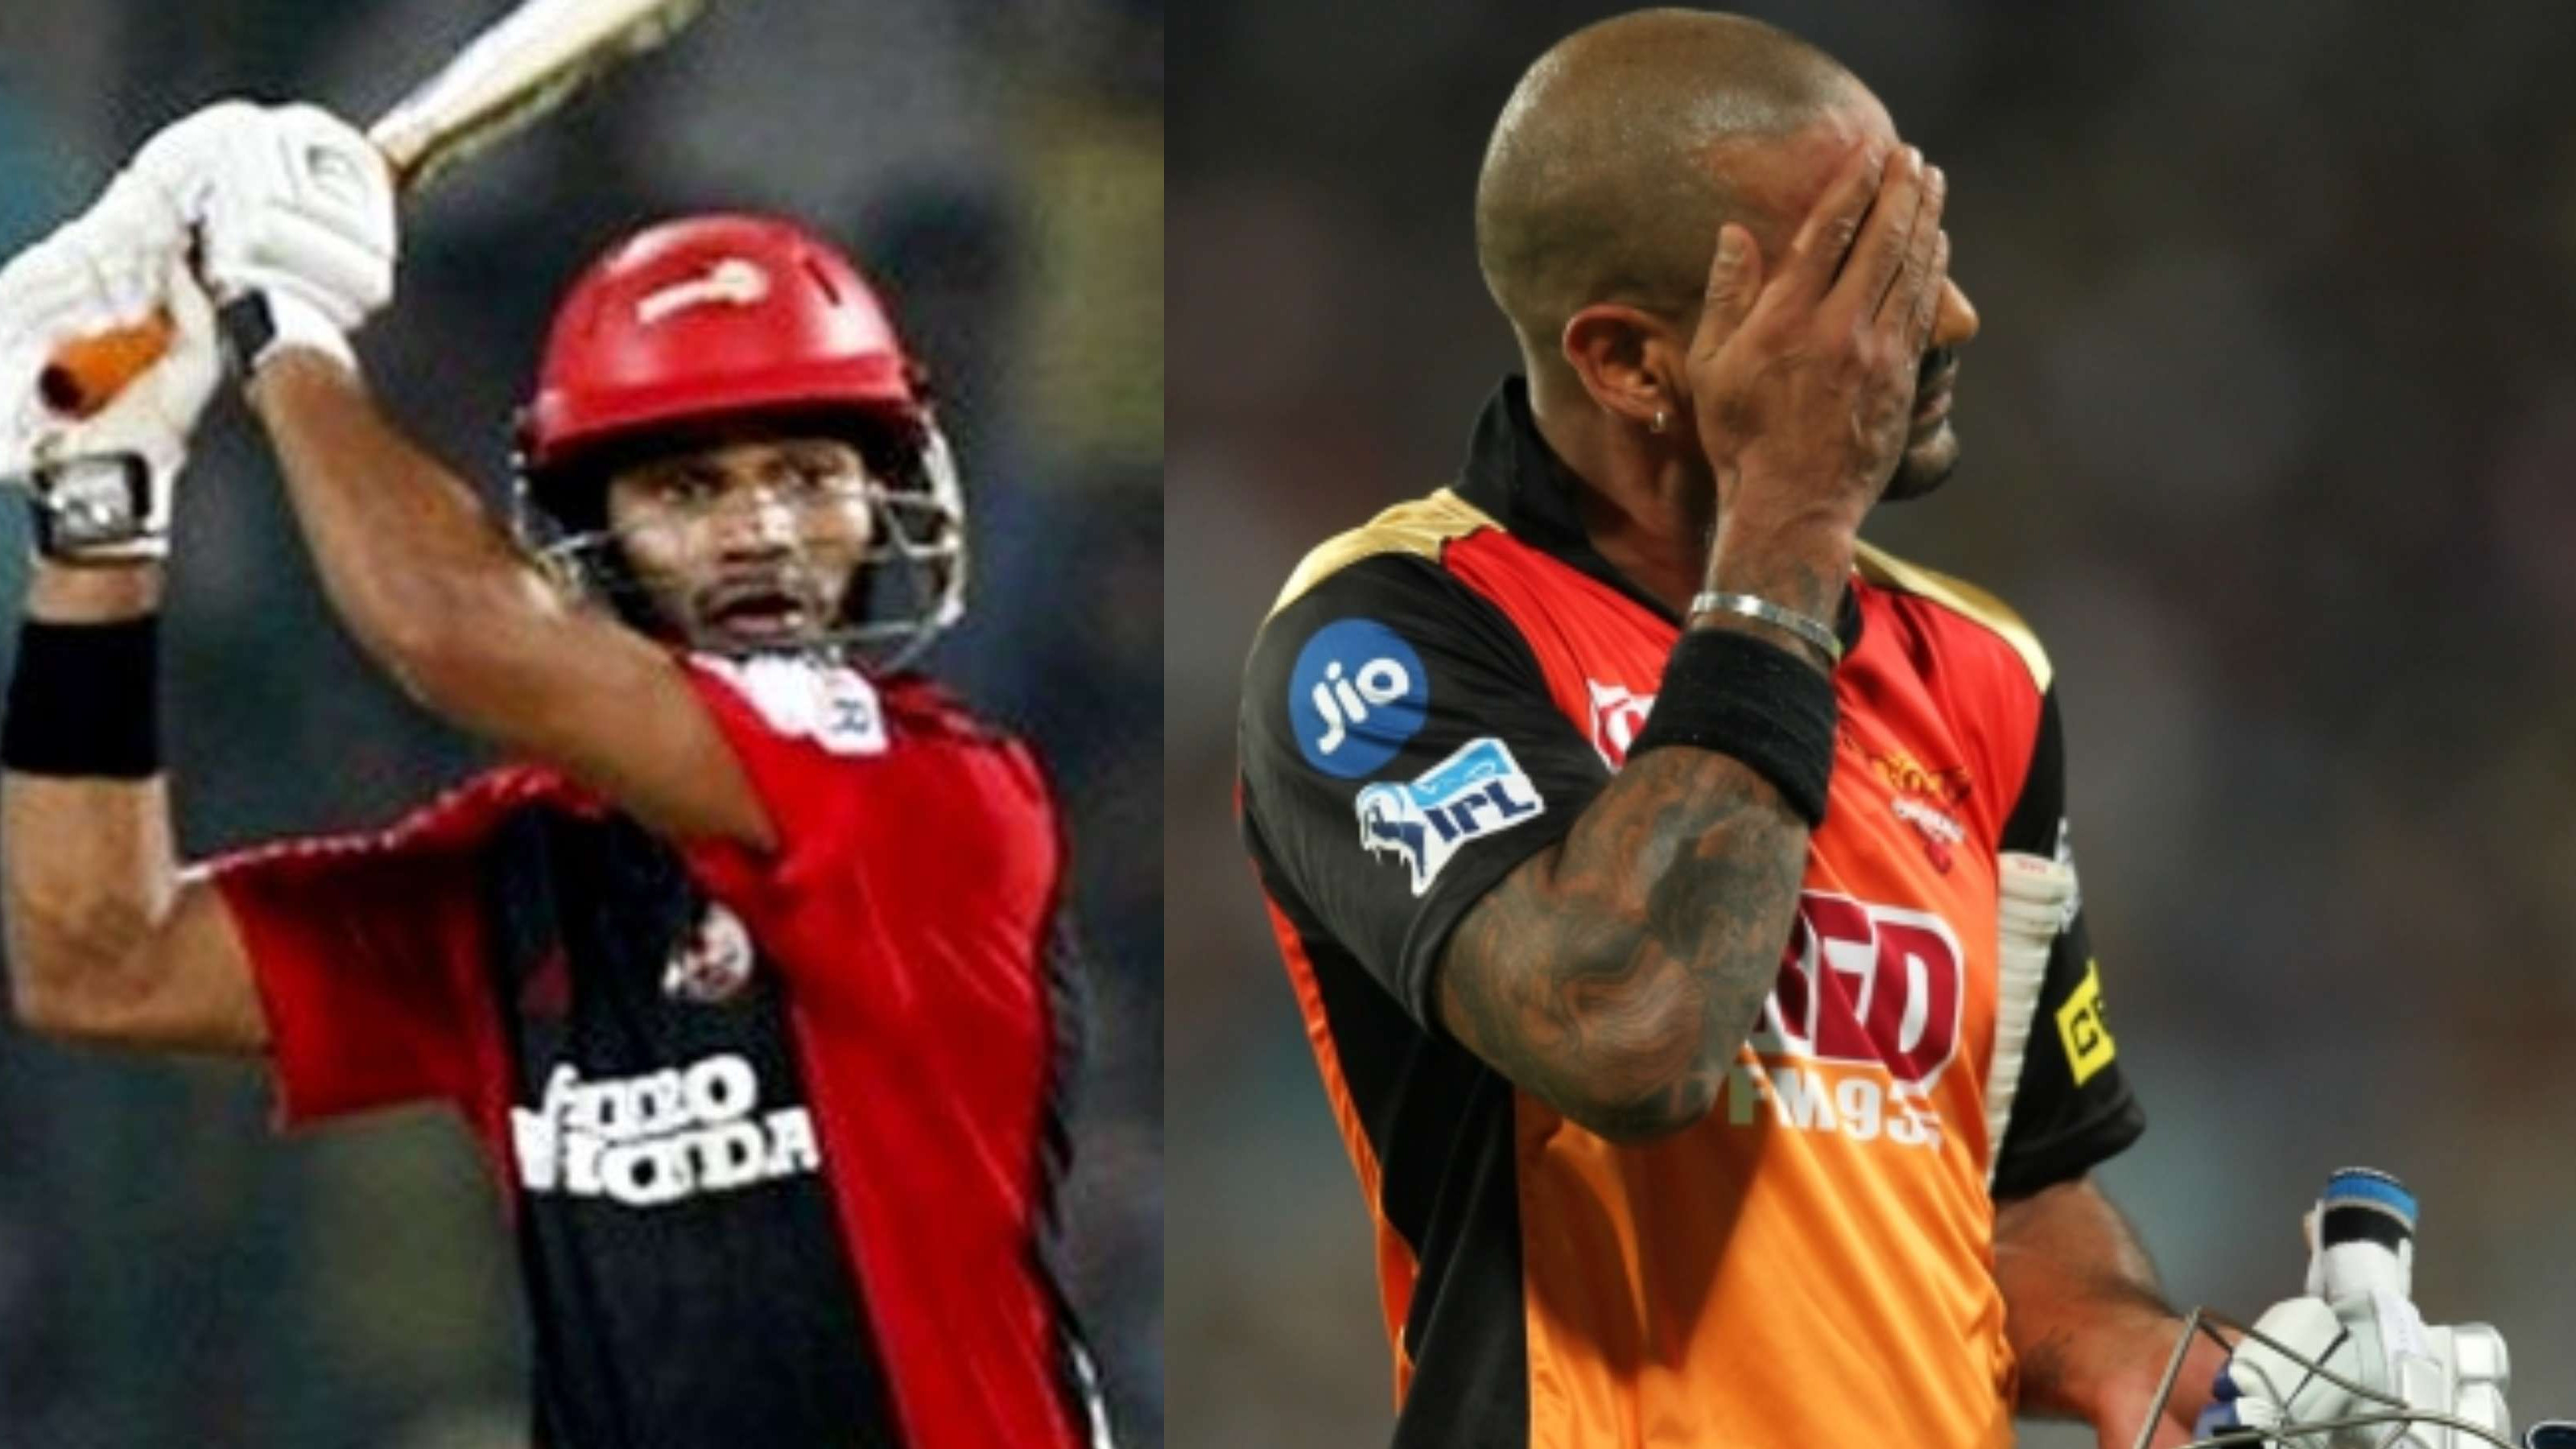 IPL: Delhi Daredevils announces Shikhar Dhawan's return to home in style